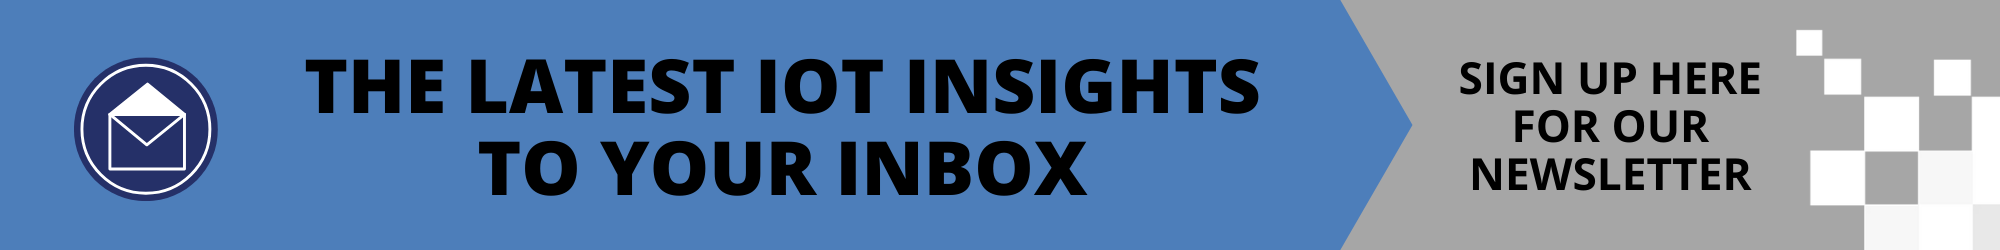 The latest IoT insights to your inbox